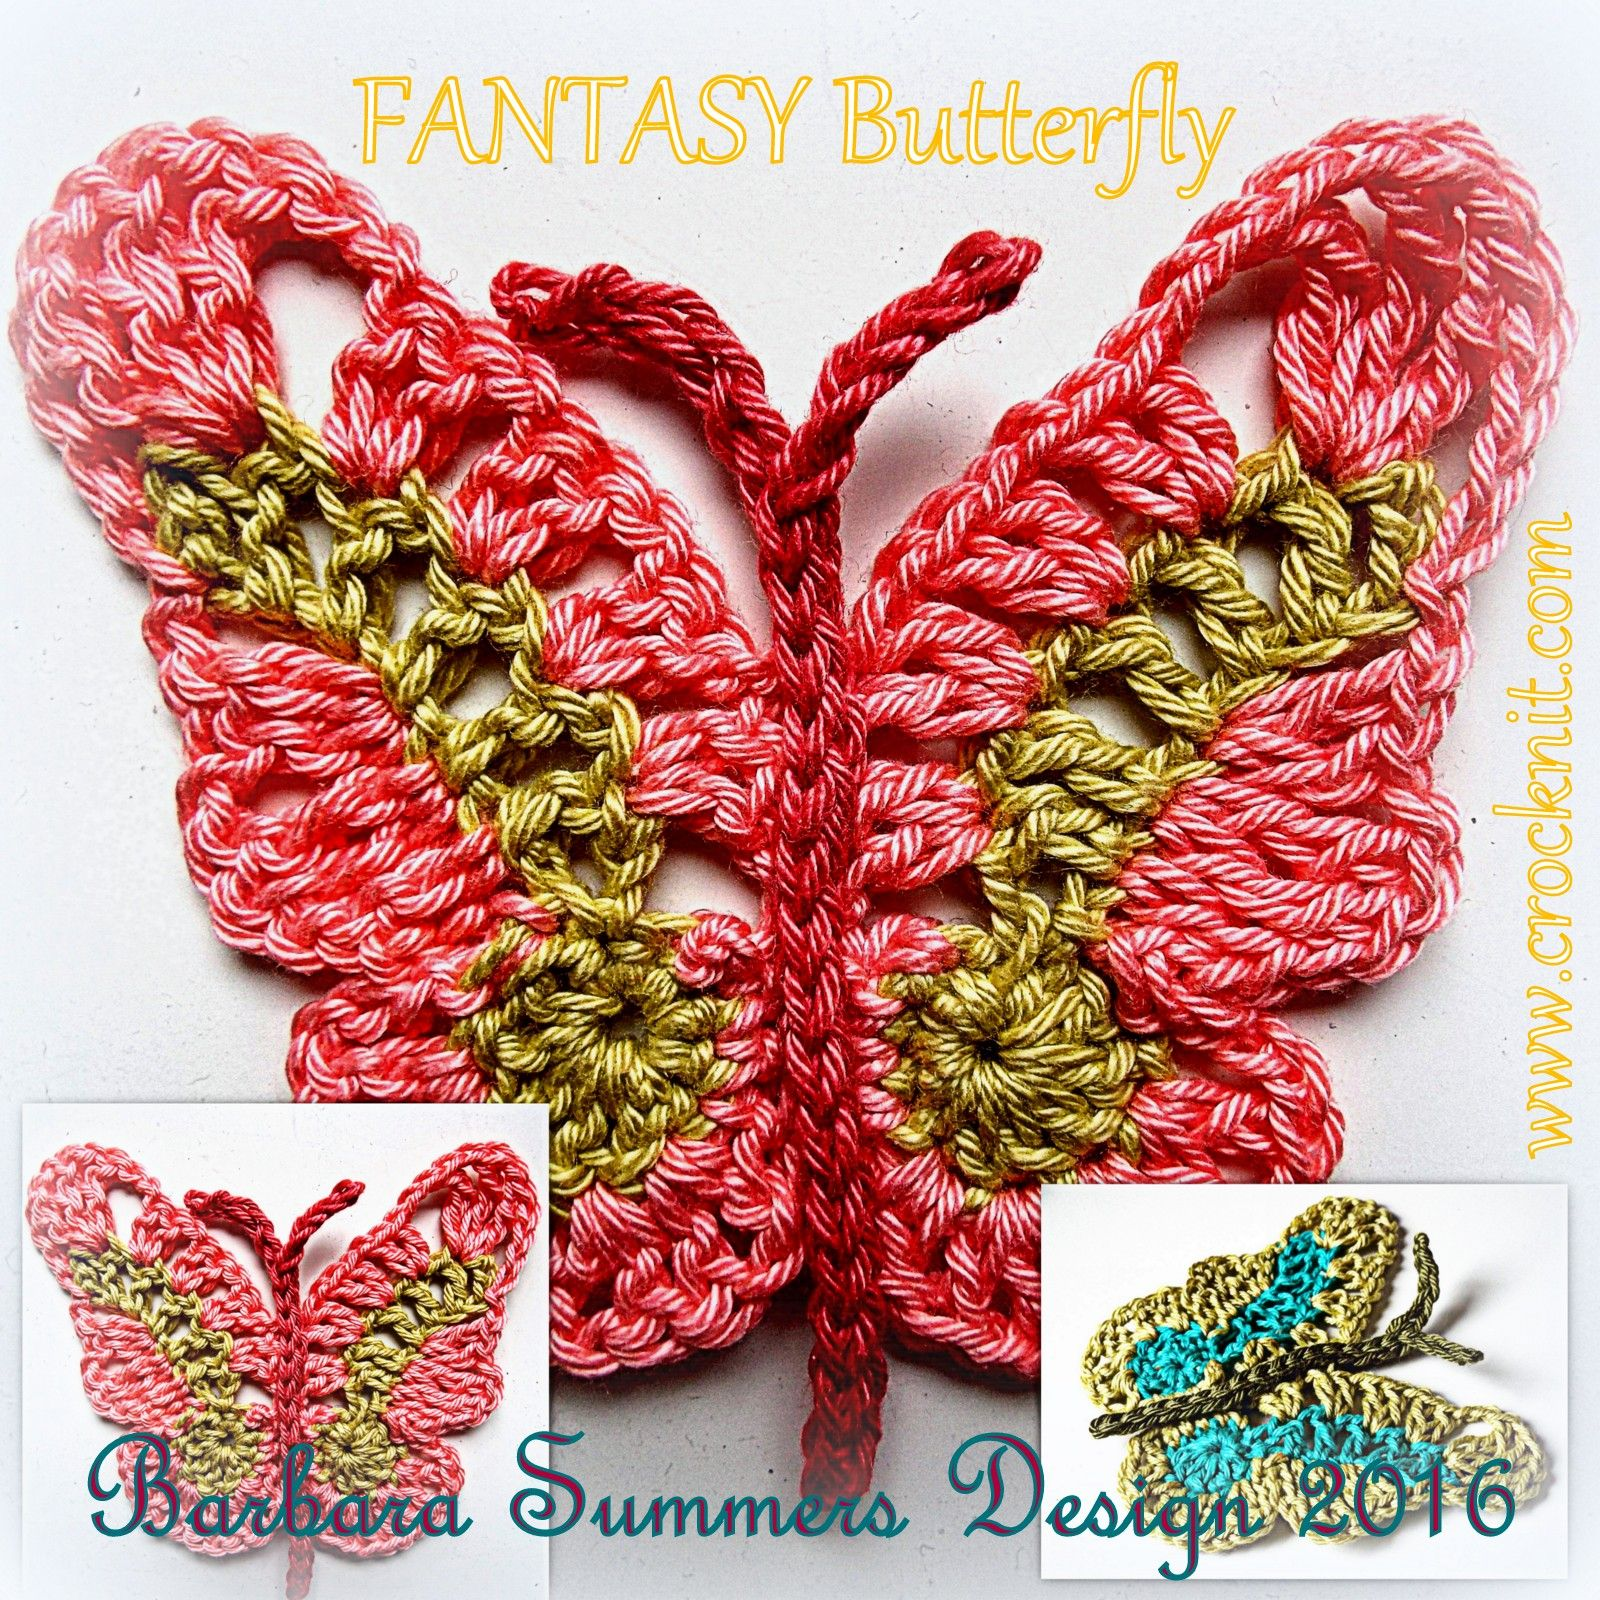 FANTASTY Butterfly Crochet Pattern